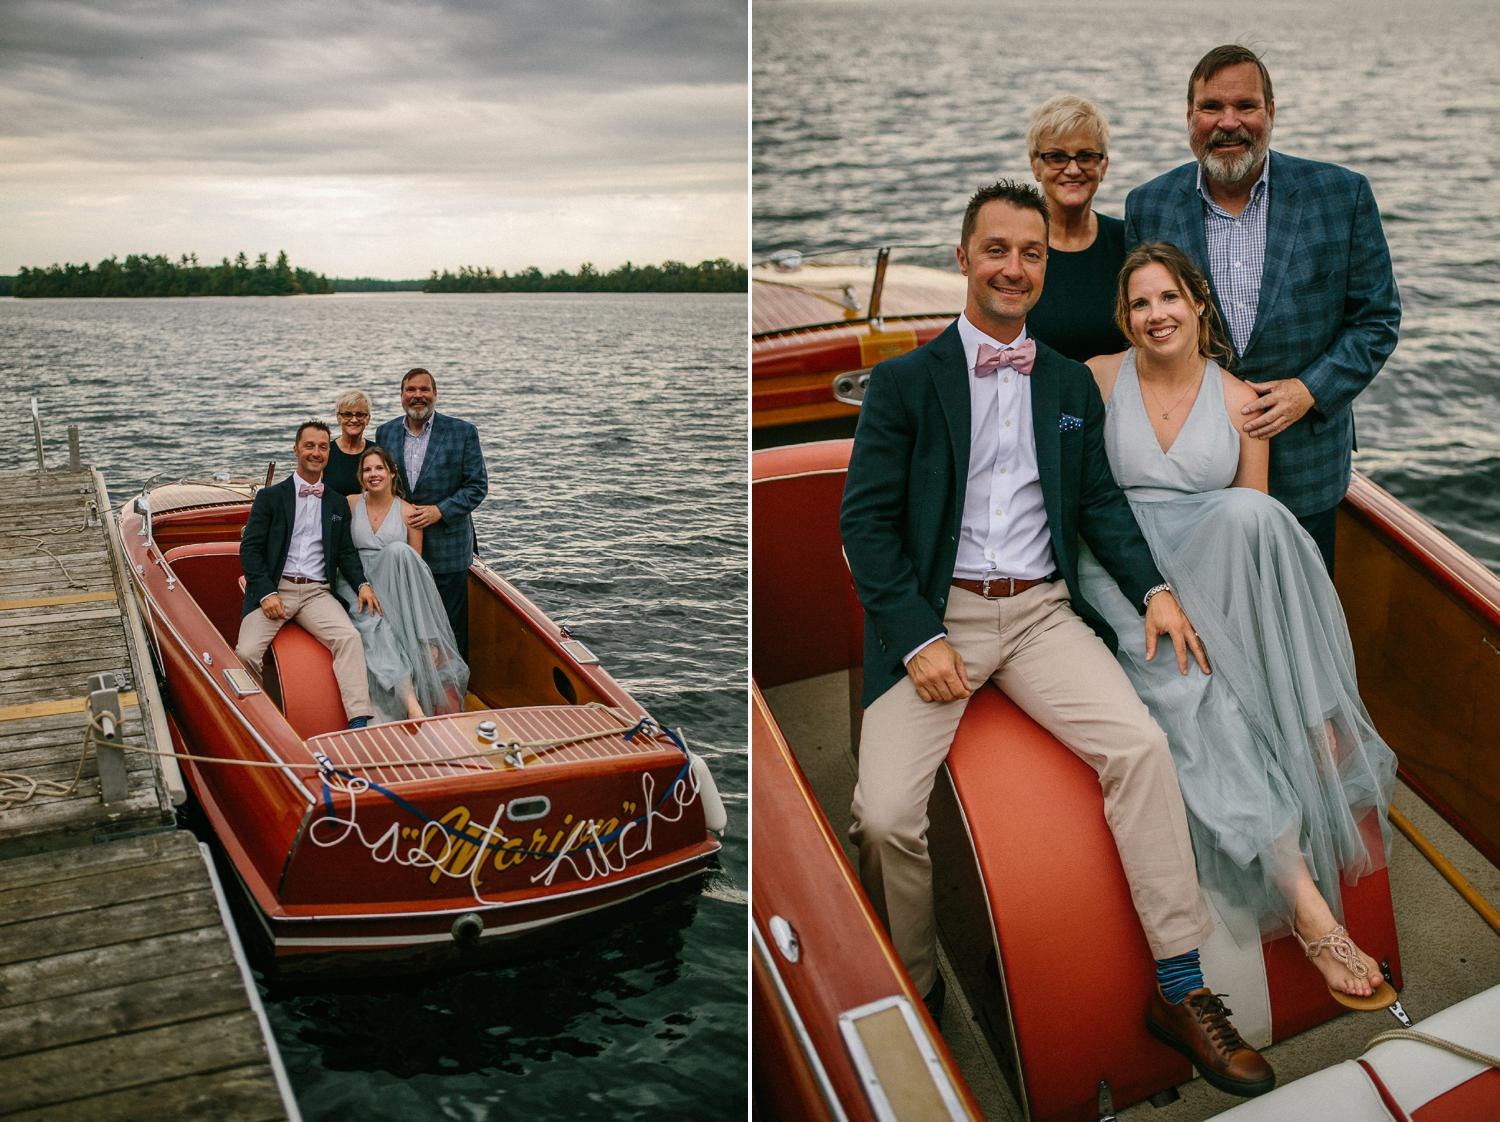 kerry ford photography - small intimate backyard rideau lake island wedding perth ontario-097.jpg